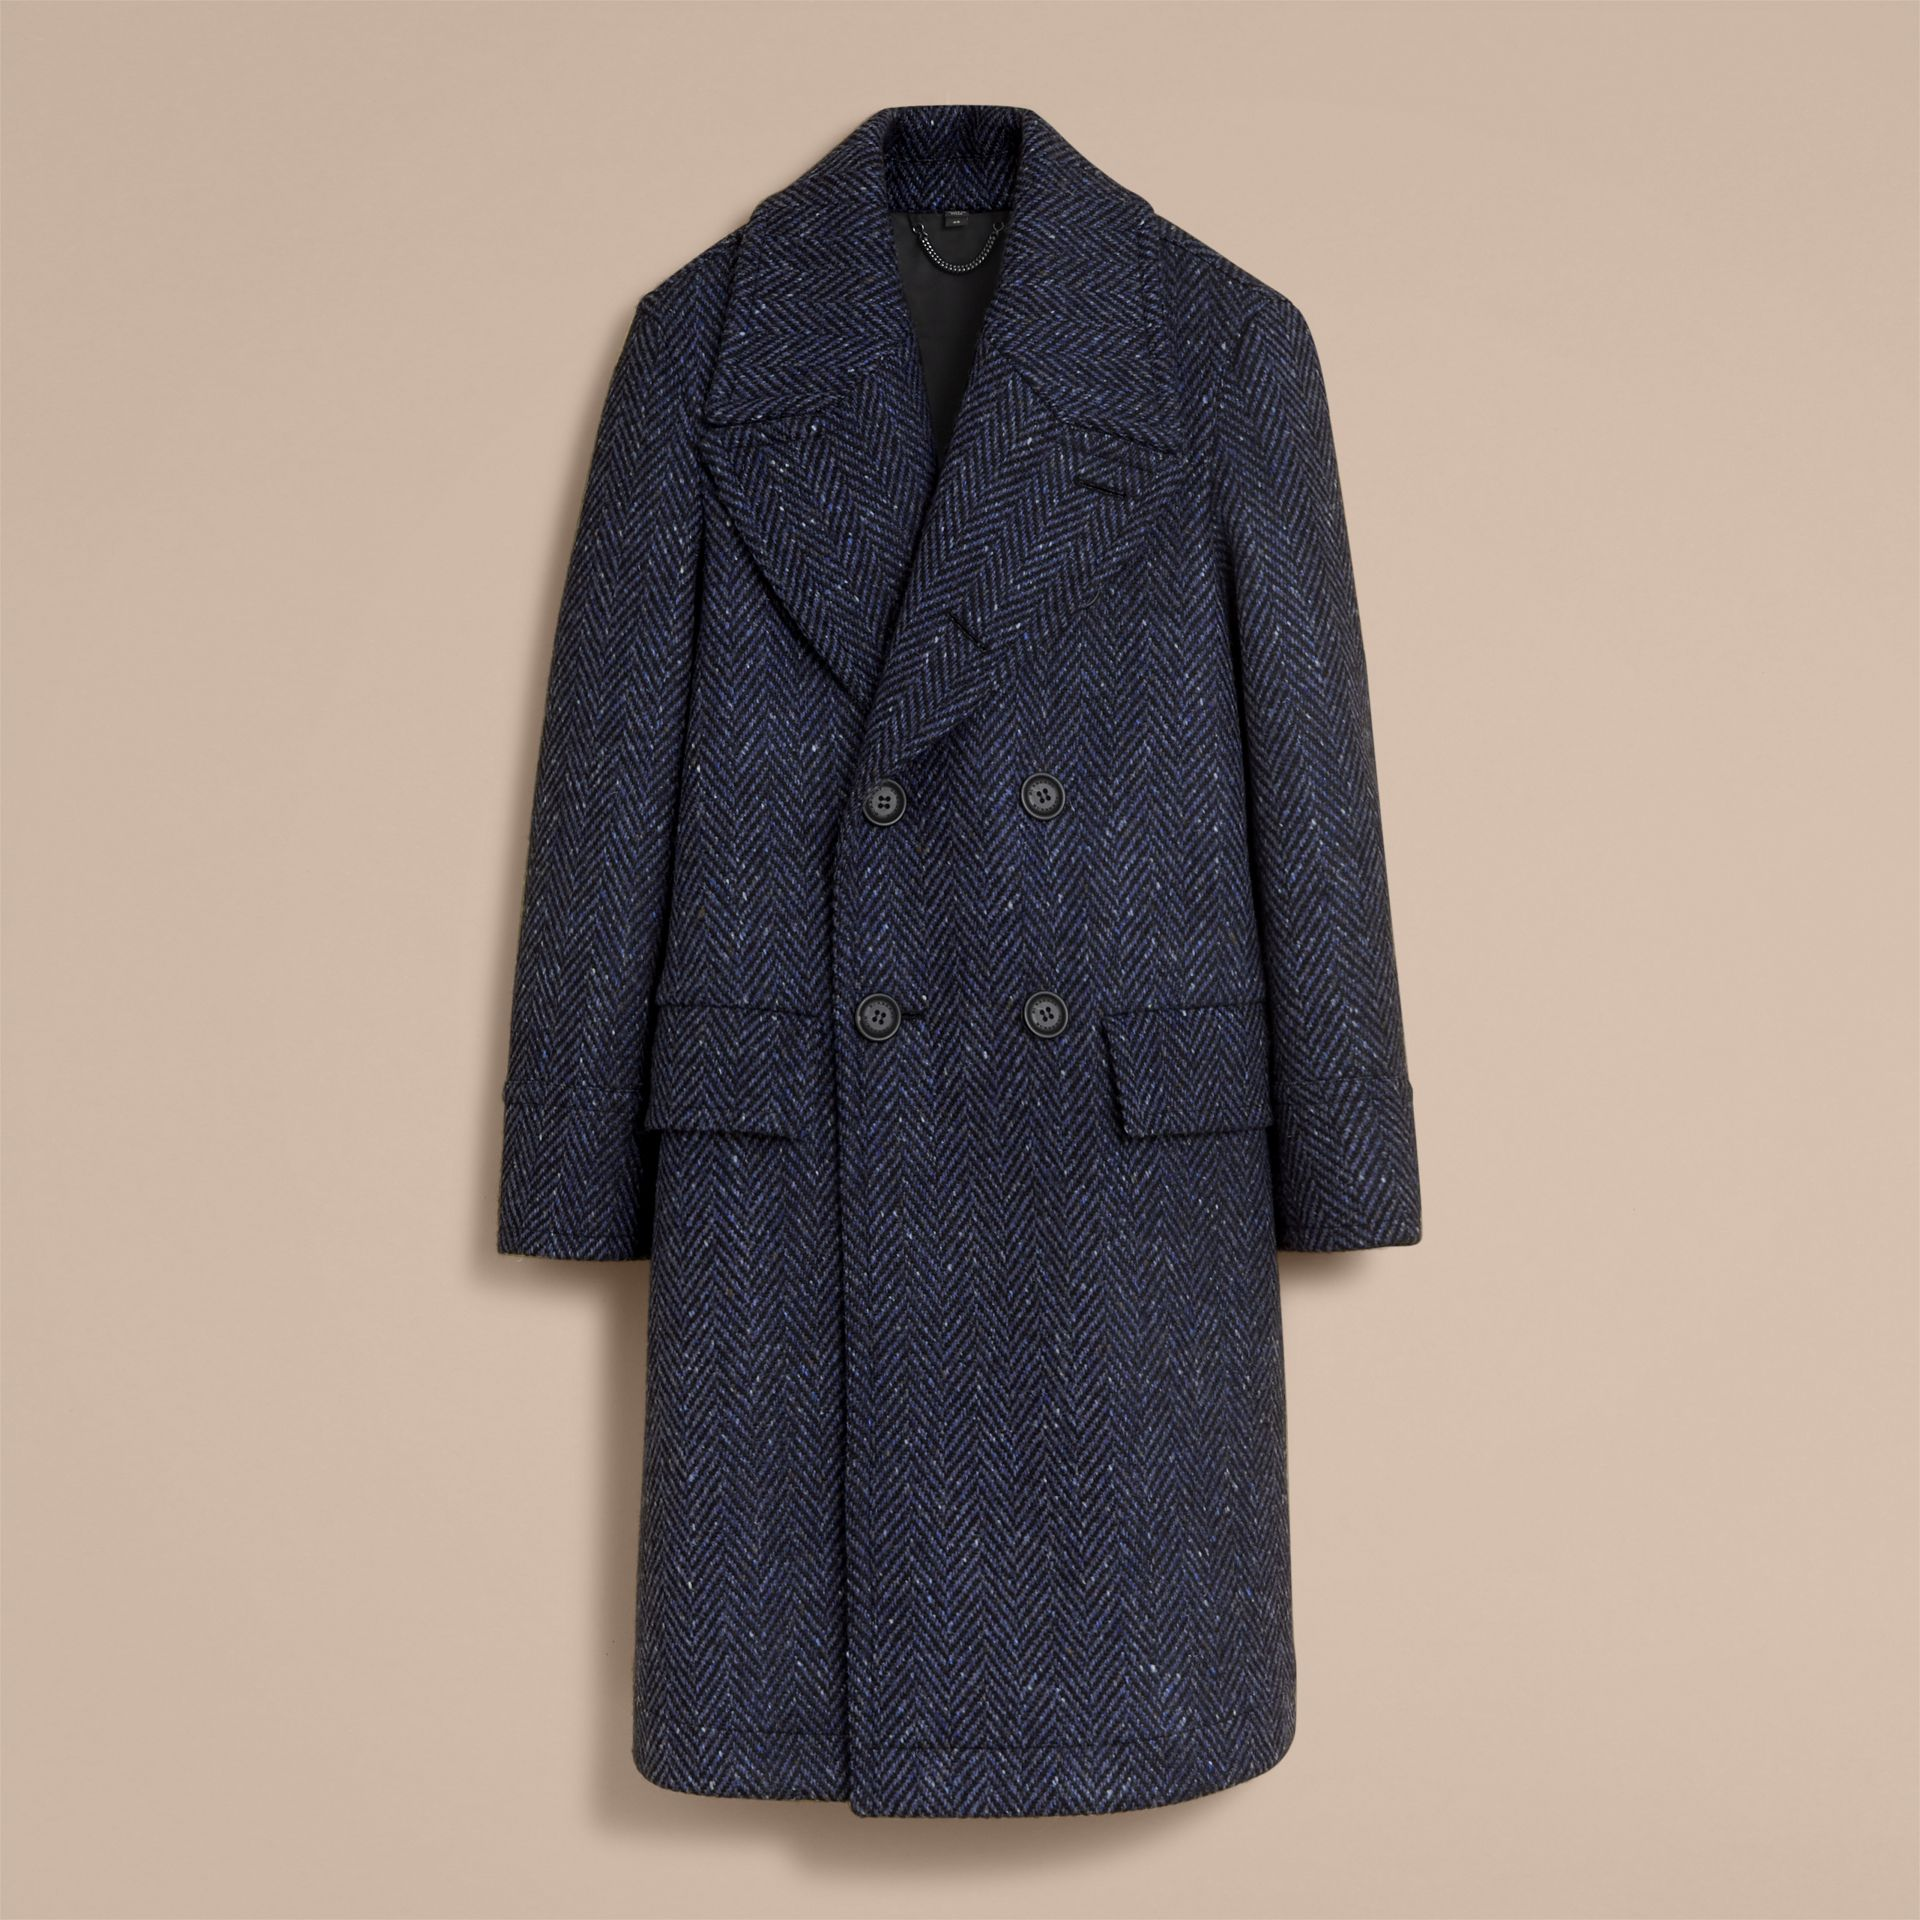 Donegal Herringbone Wool Tweed Topcoat - Men | Burberry Hong Kong - gallery image 4